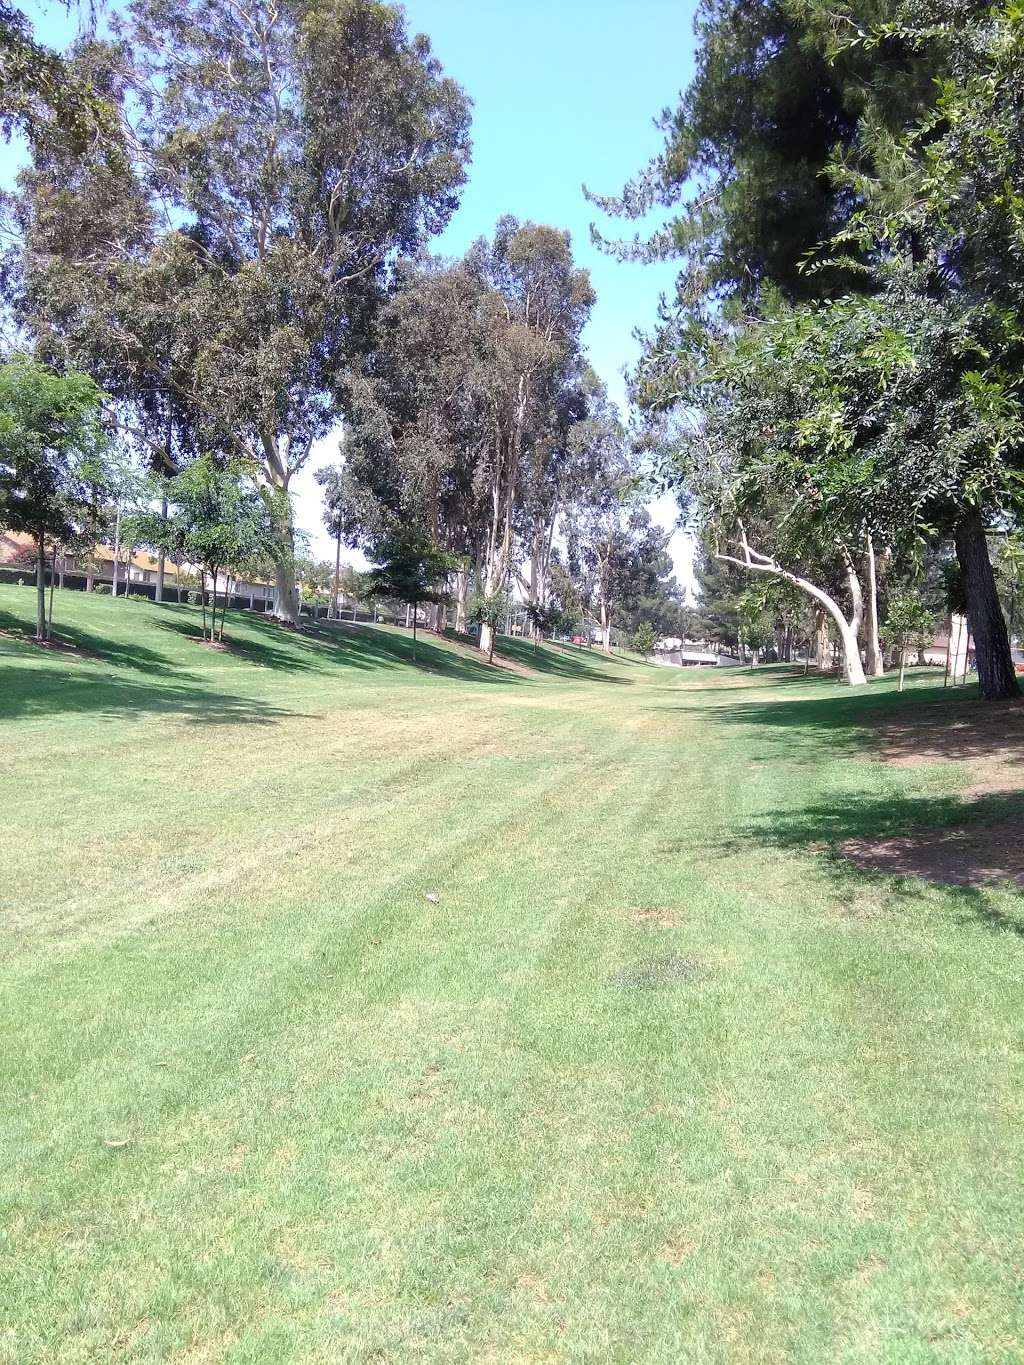 Creekside Park - park  | Photo 2 of 10 | Address: 3151 E Riverside Dr, Ontario, CA 91761, USA